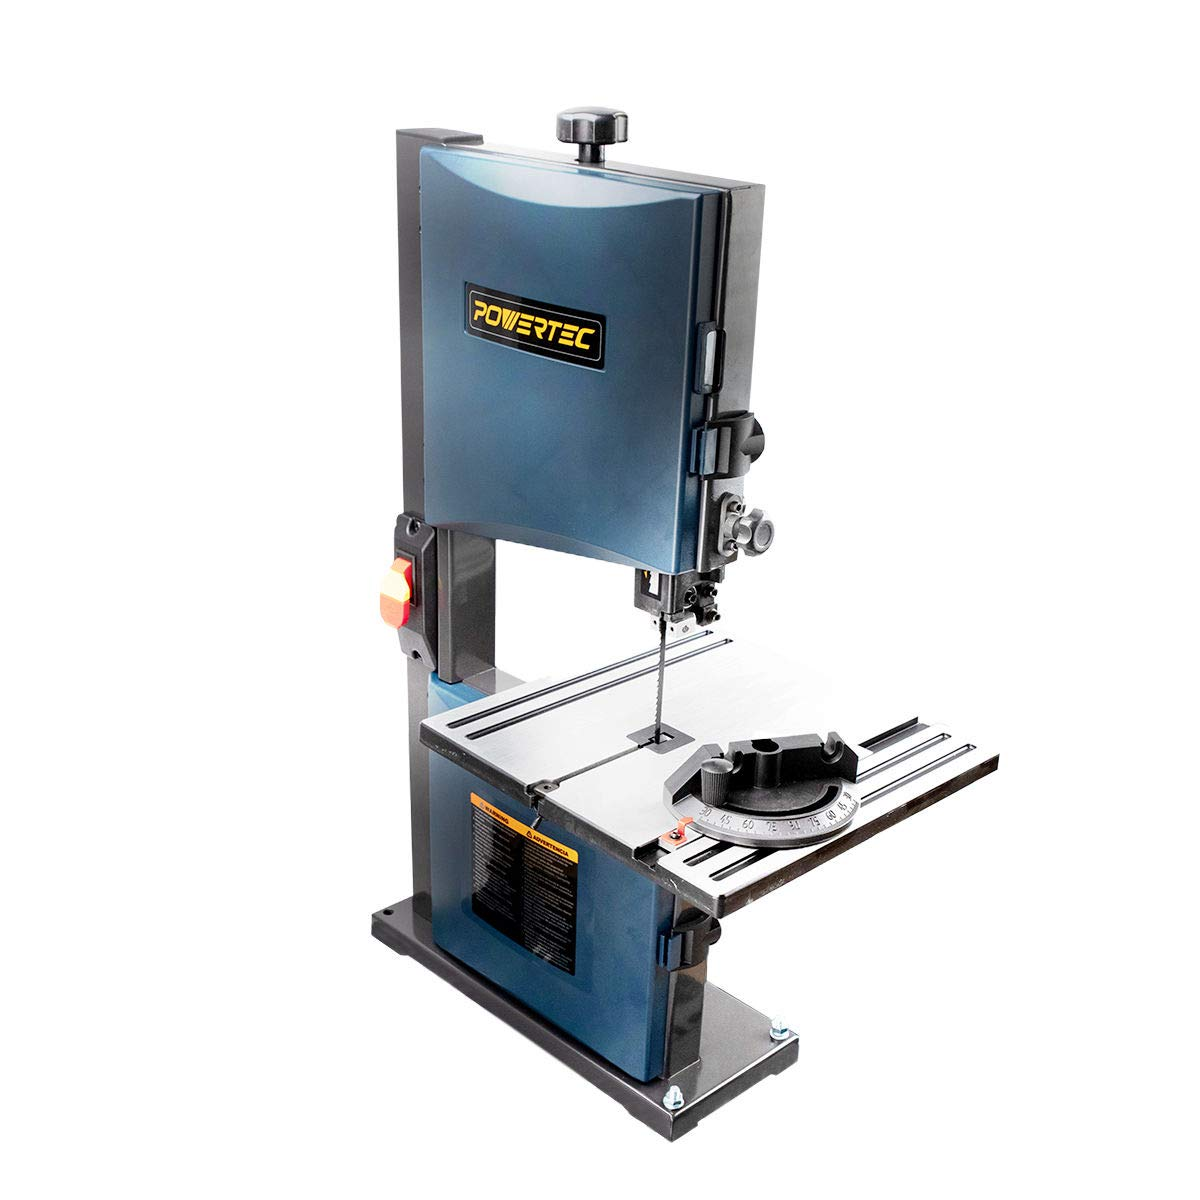 8.POWERTEC BS900 9-Inch Benchtop Band Saw